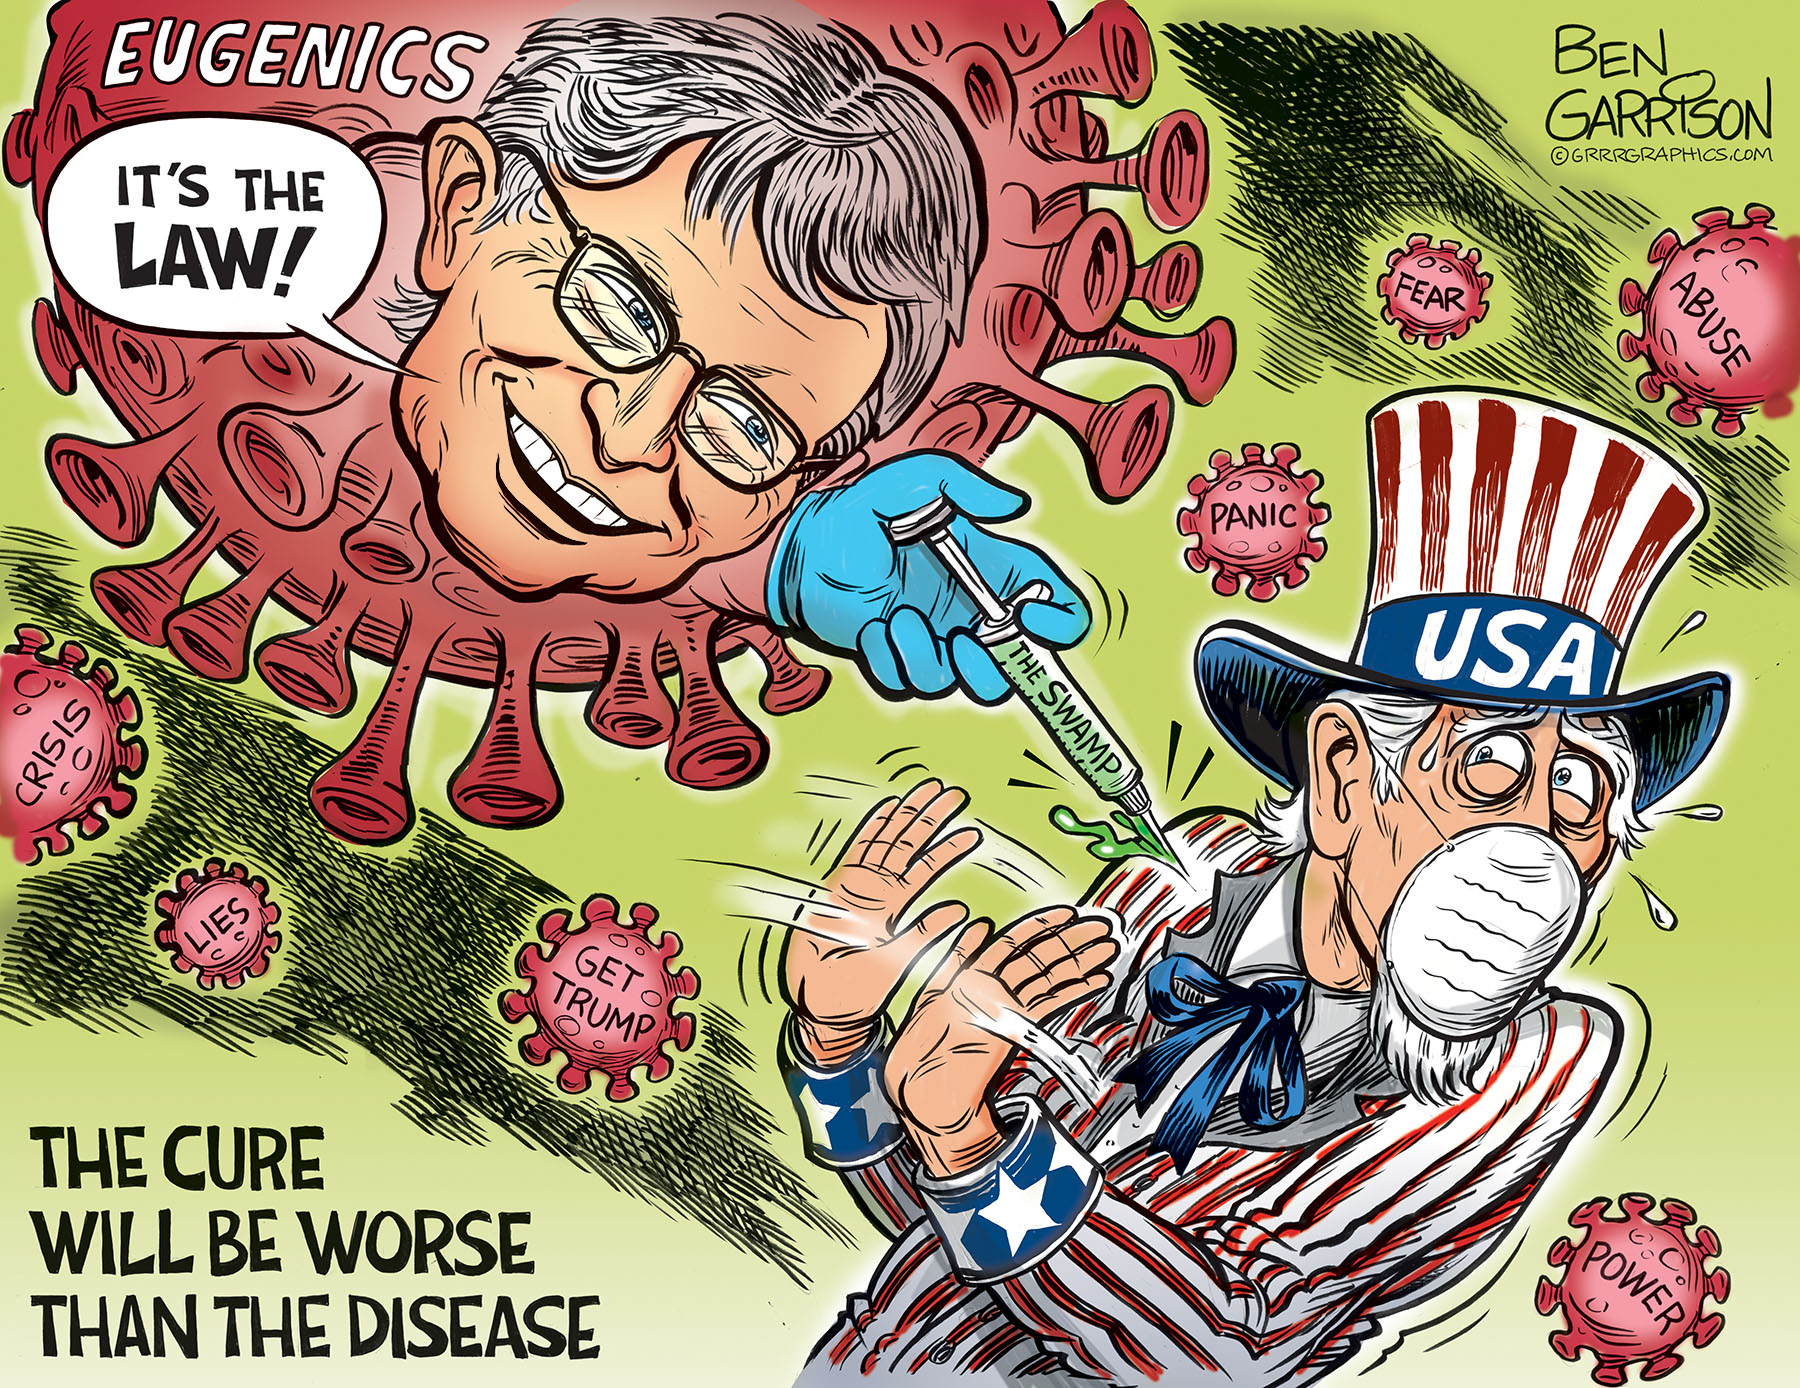 coronavirus_bill_gates.jpg?fit=1800%2C1388&ssl=1